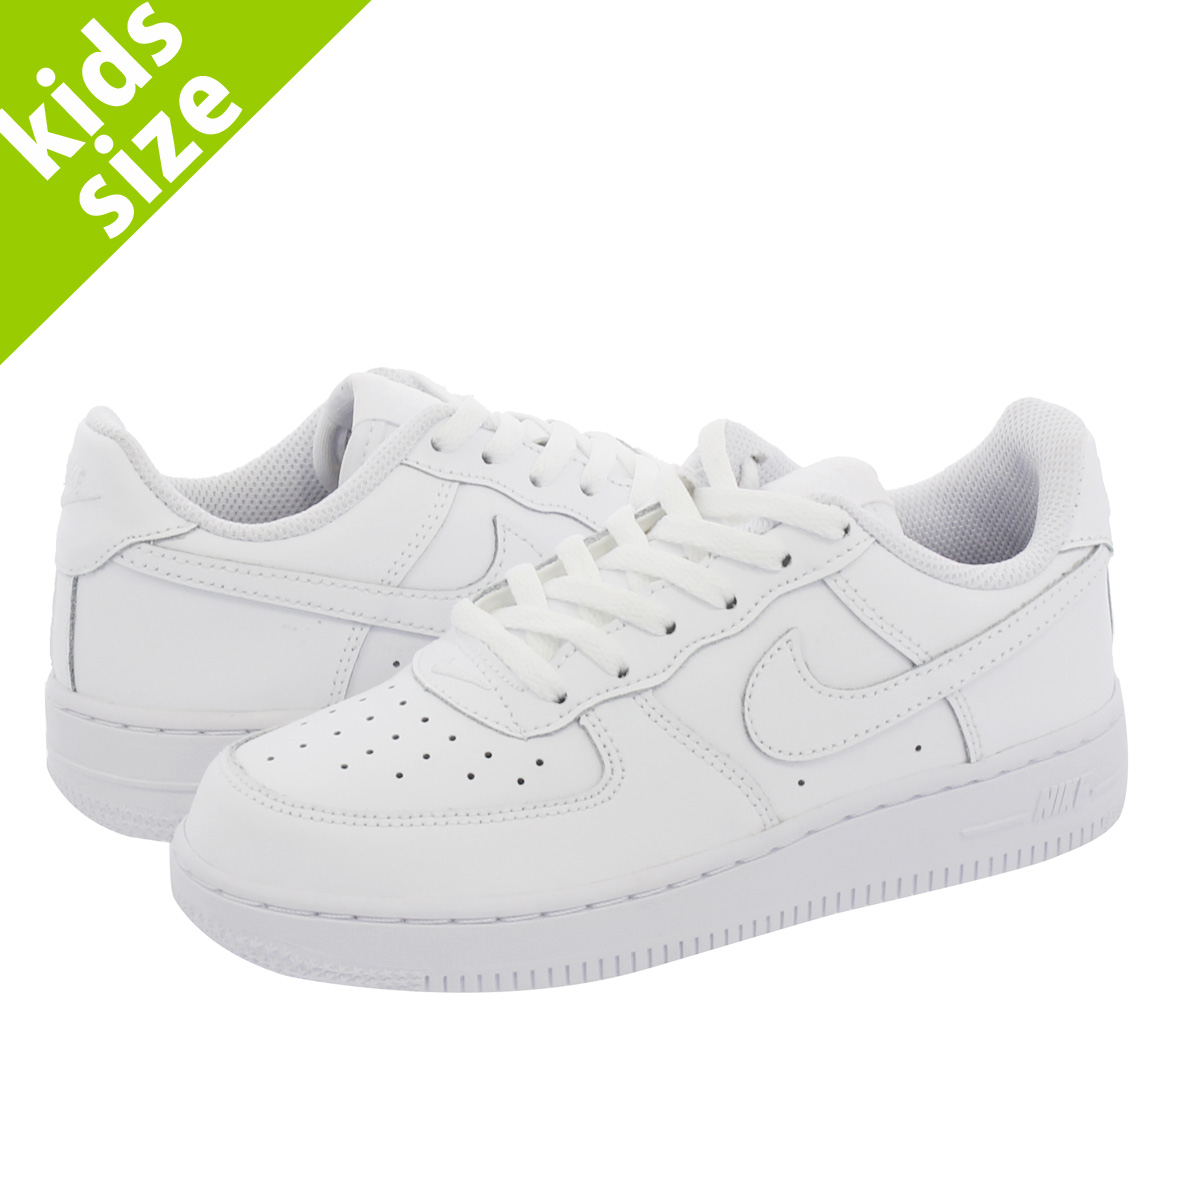 LOWTEX BIG-SMALL SHOP  NIKE AIR FORCE 1 PS Nike air force 1 mid PS WHITE  WHITE WHITE 314 ce653df6d51